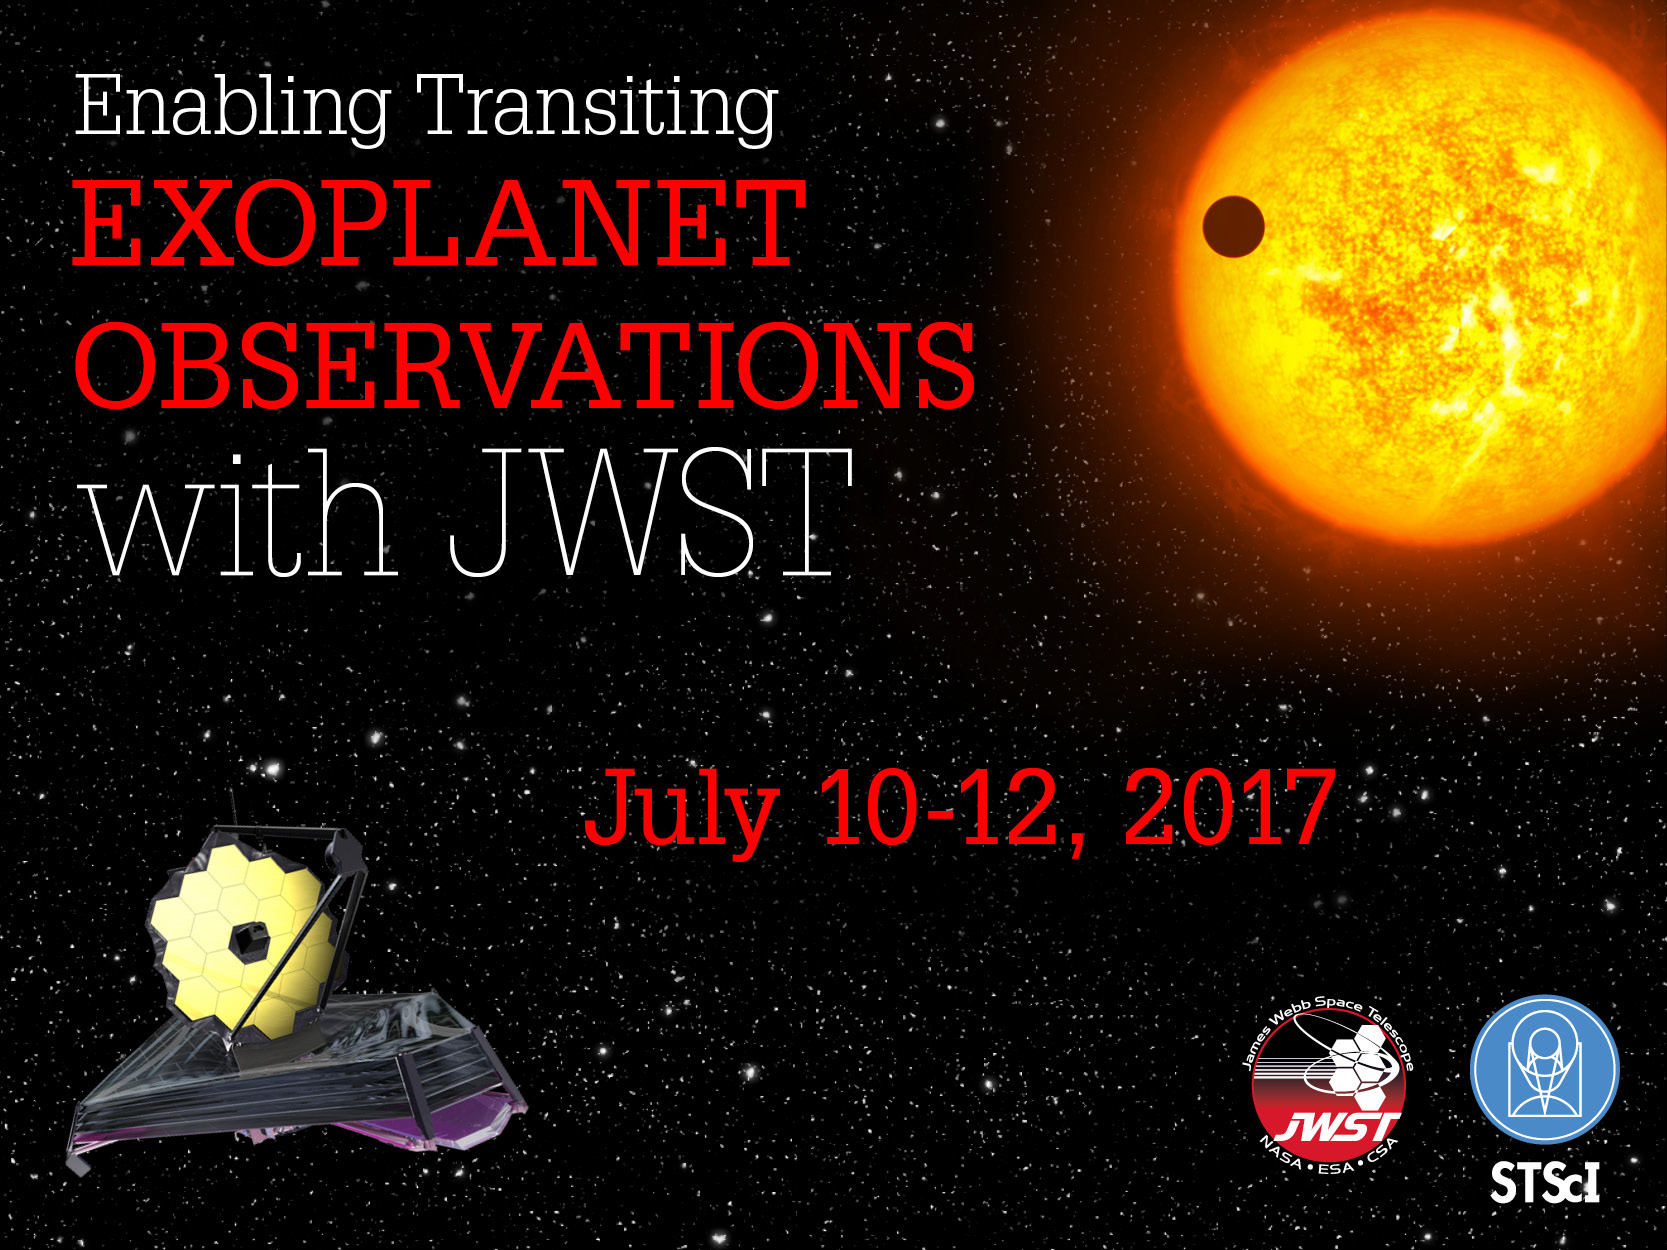 Enabling Transiting Exoplanet Observations with JWST